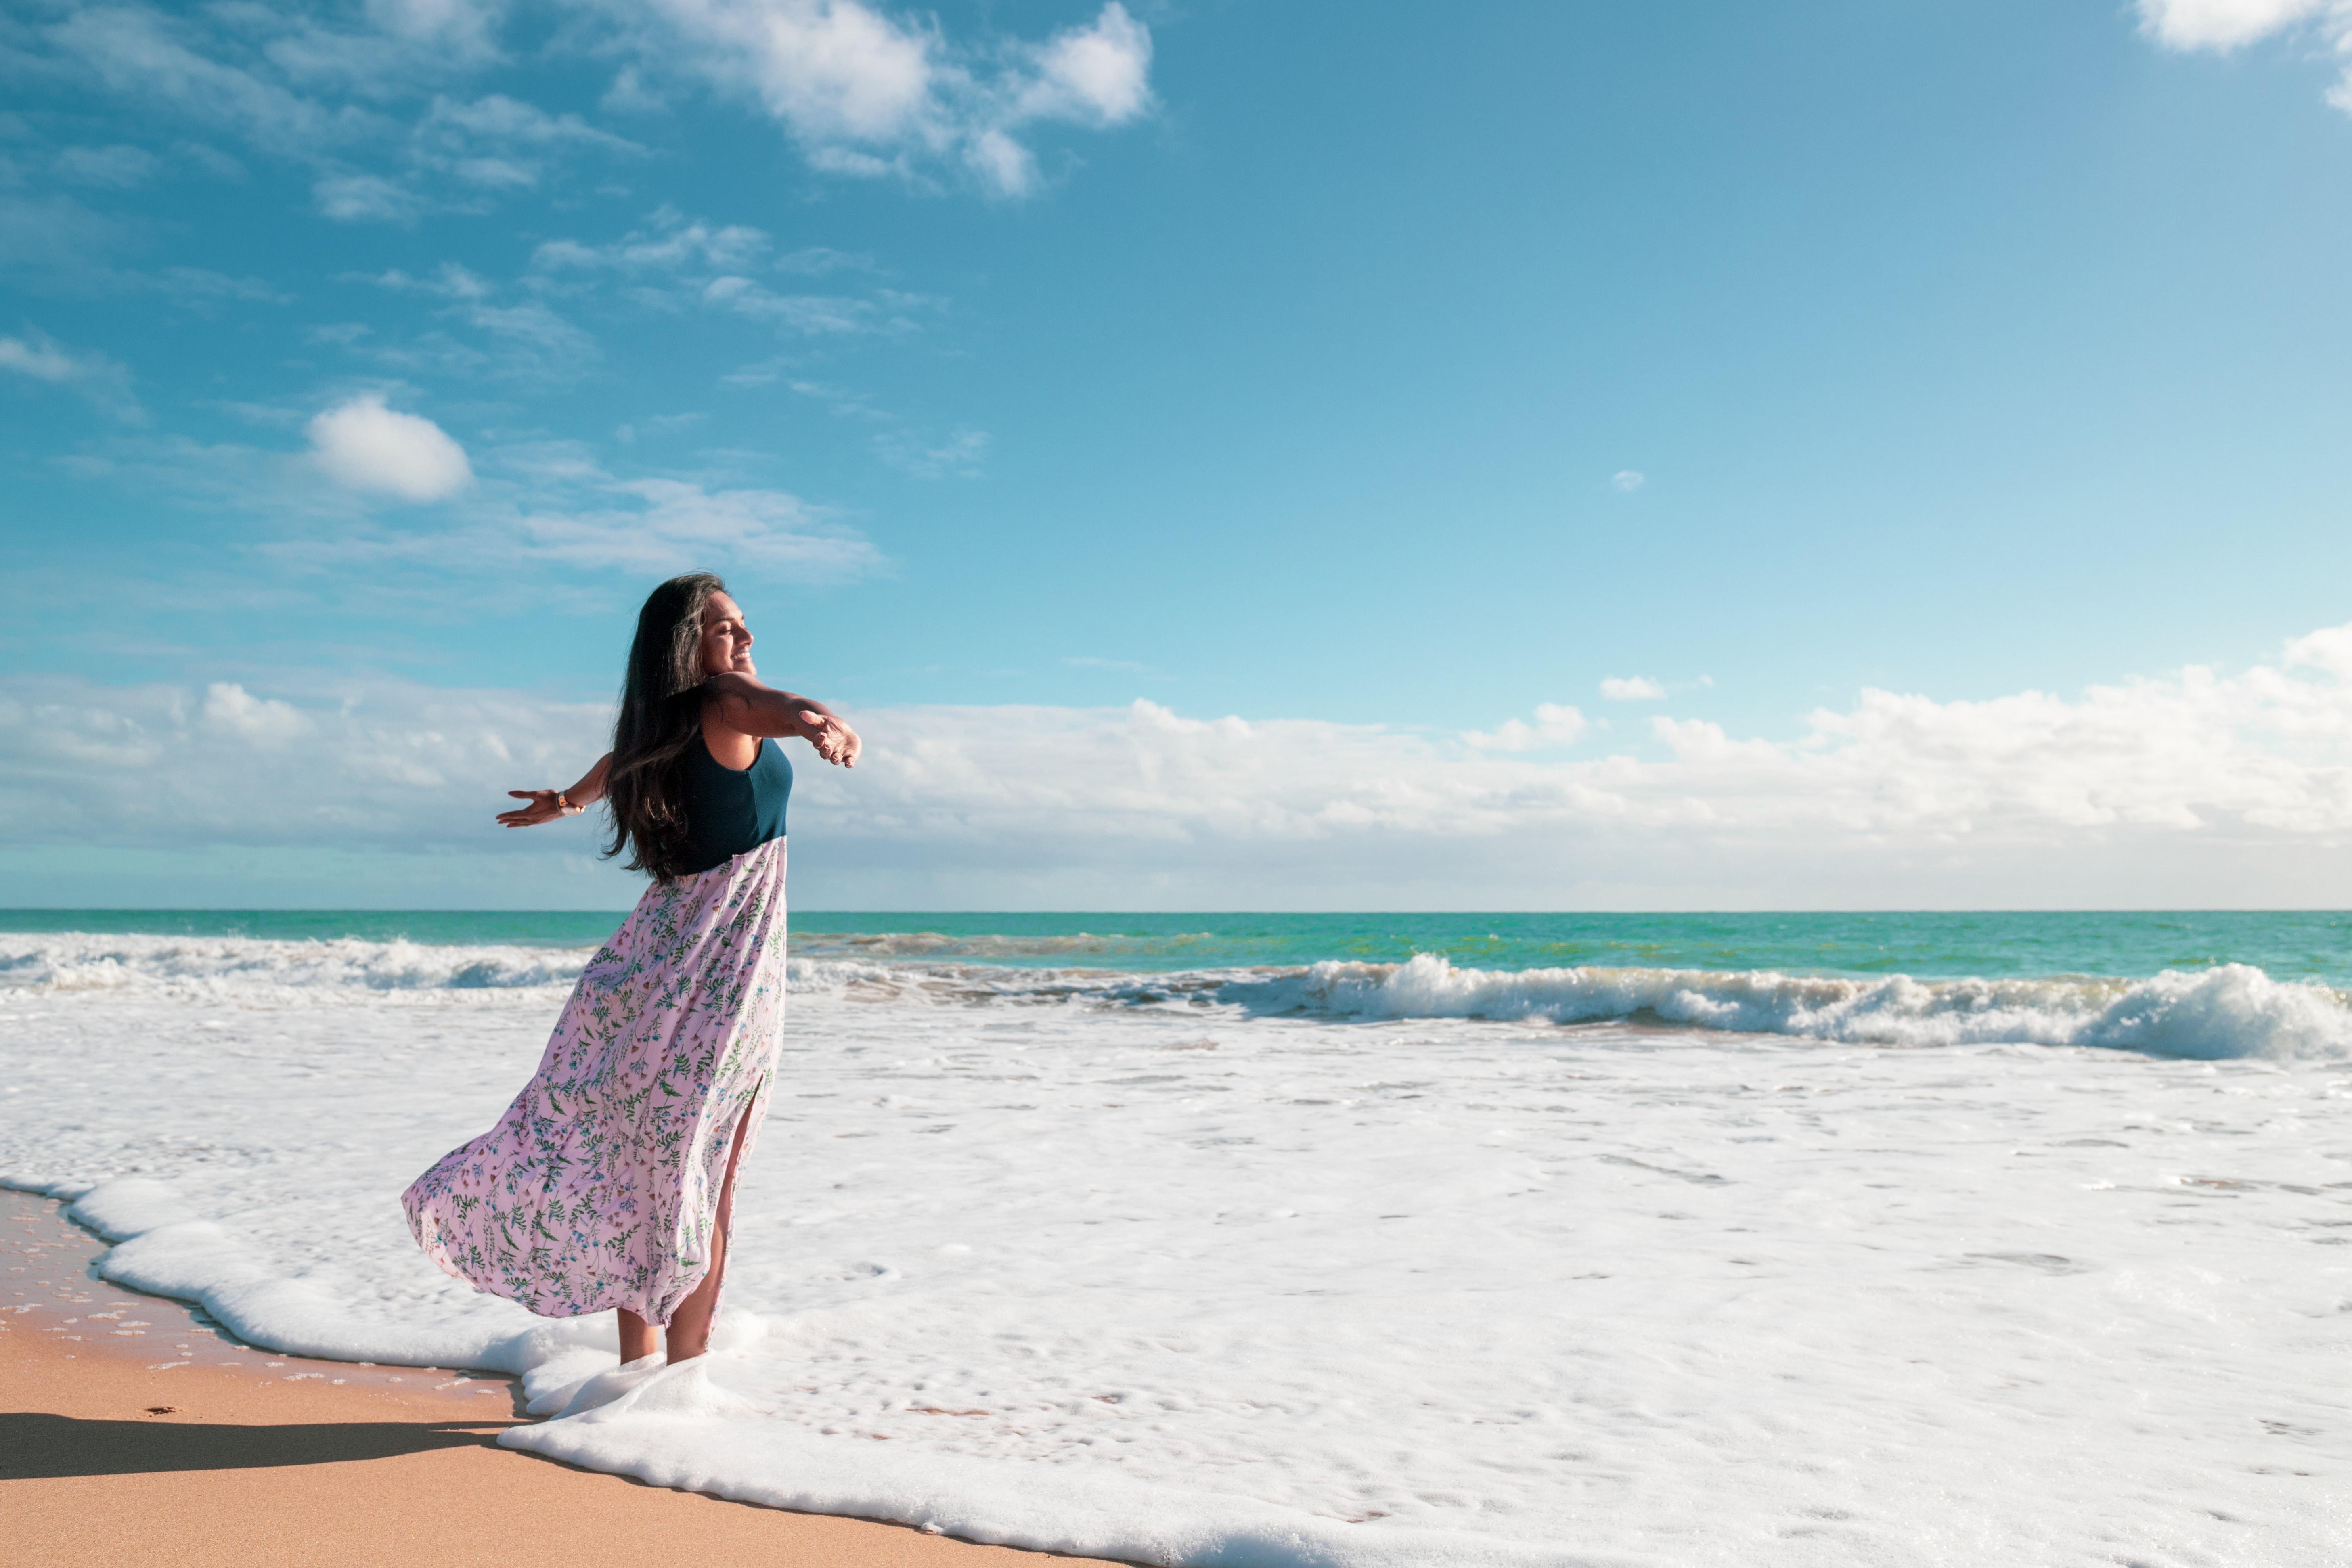 woman spreading her arms while standing near shore with ocean in background during daytime